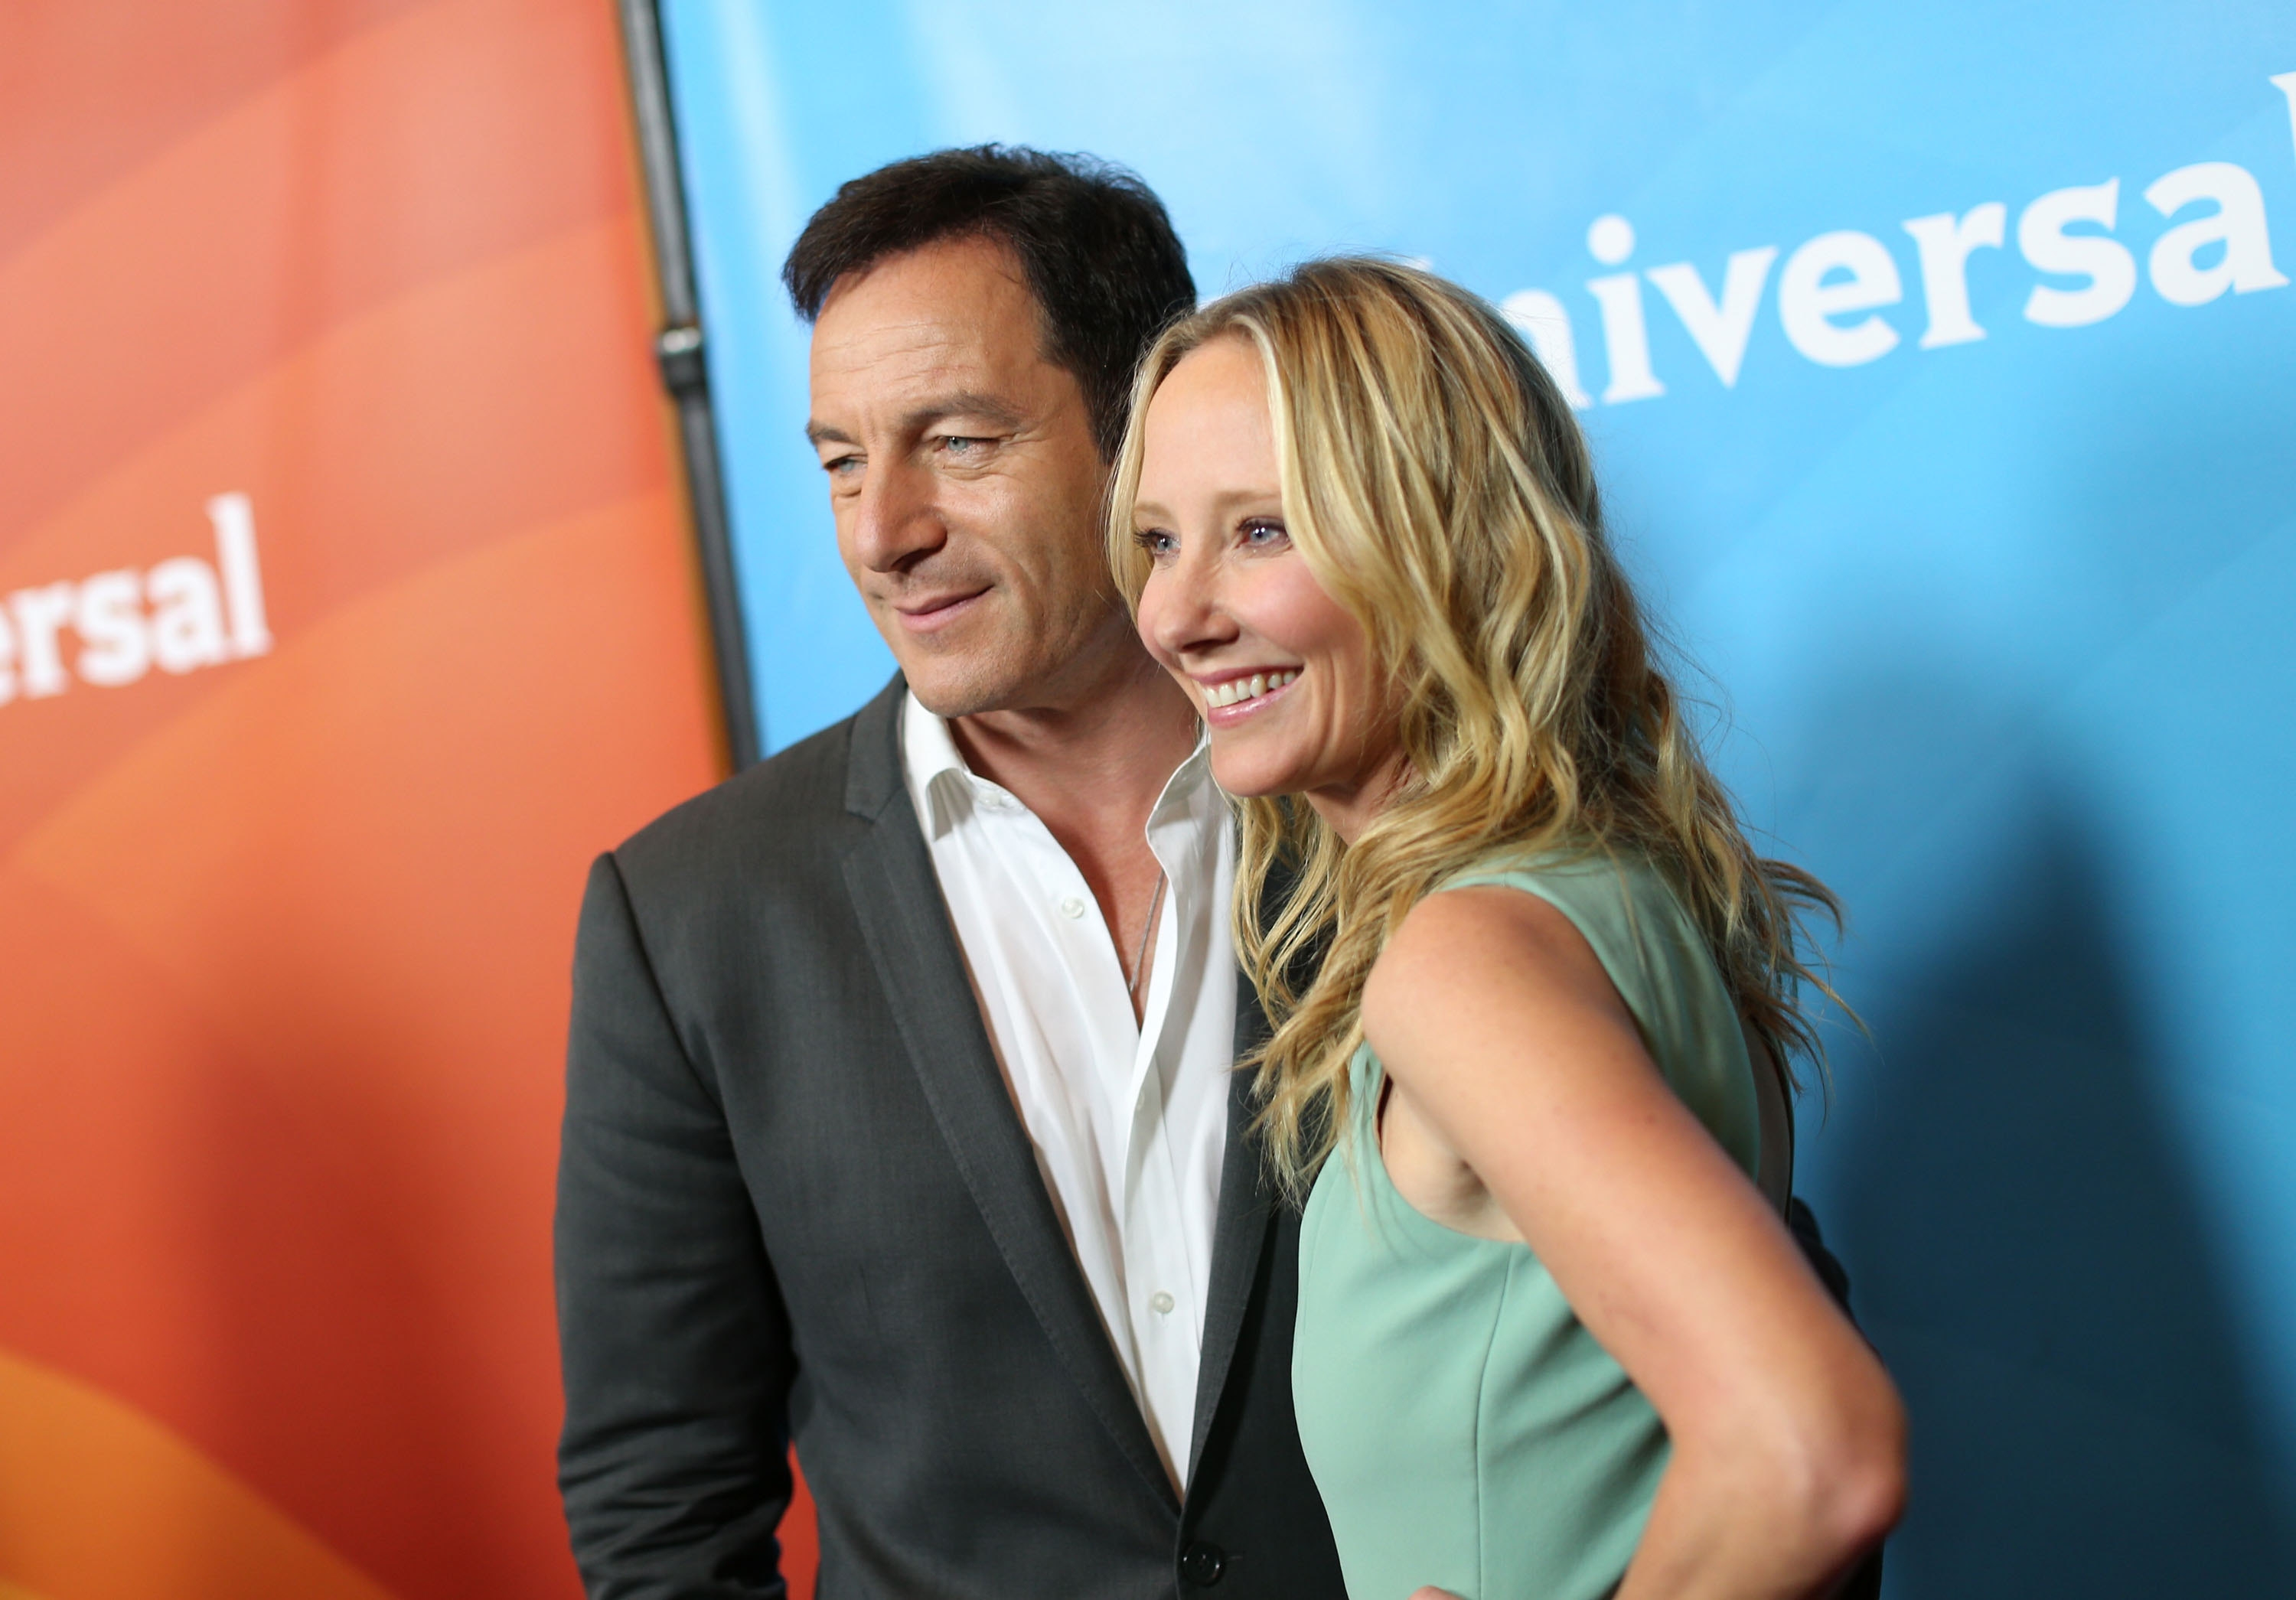 Making an entrance: Actor Jason Isaacs and actress Anne Heche attend NBC Universal's 2014 Summer TCA Tour on Monday in Beverly Hills, Calif.